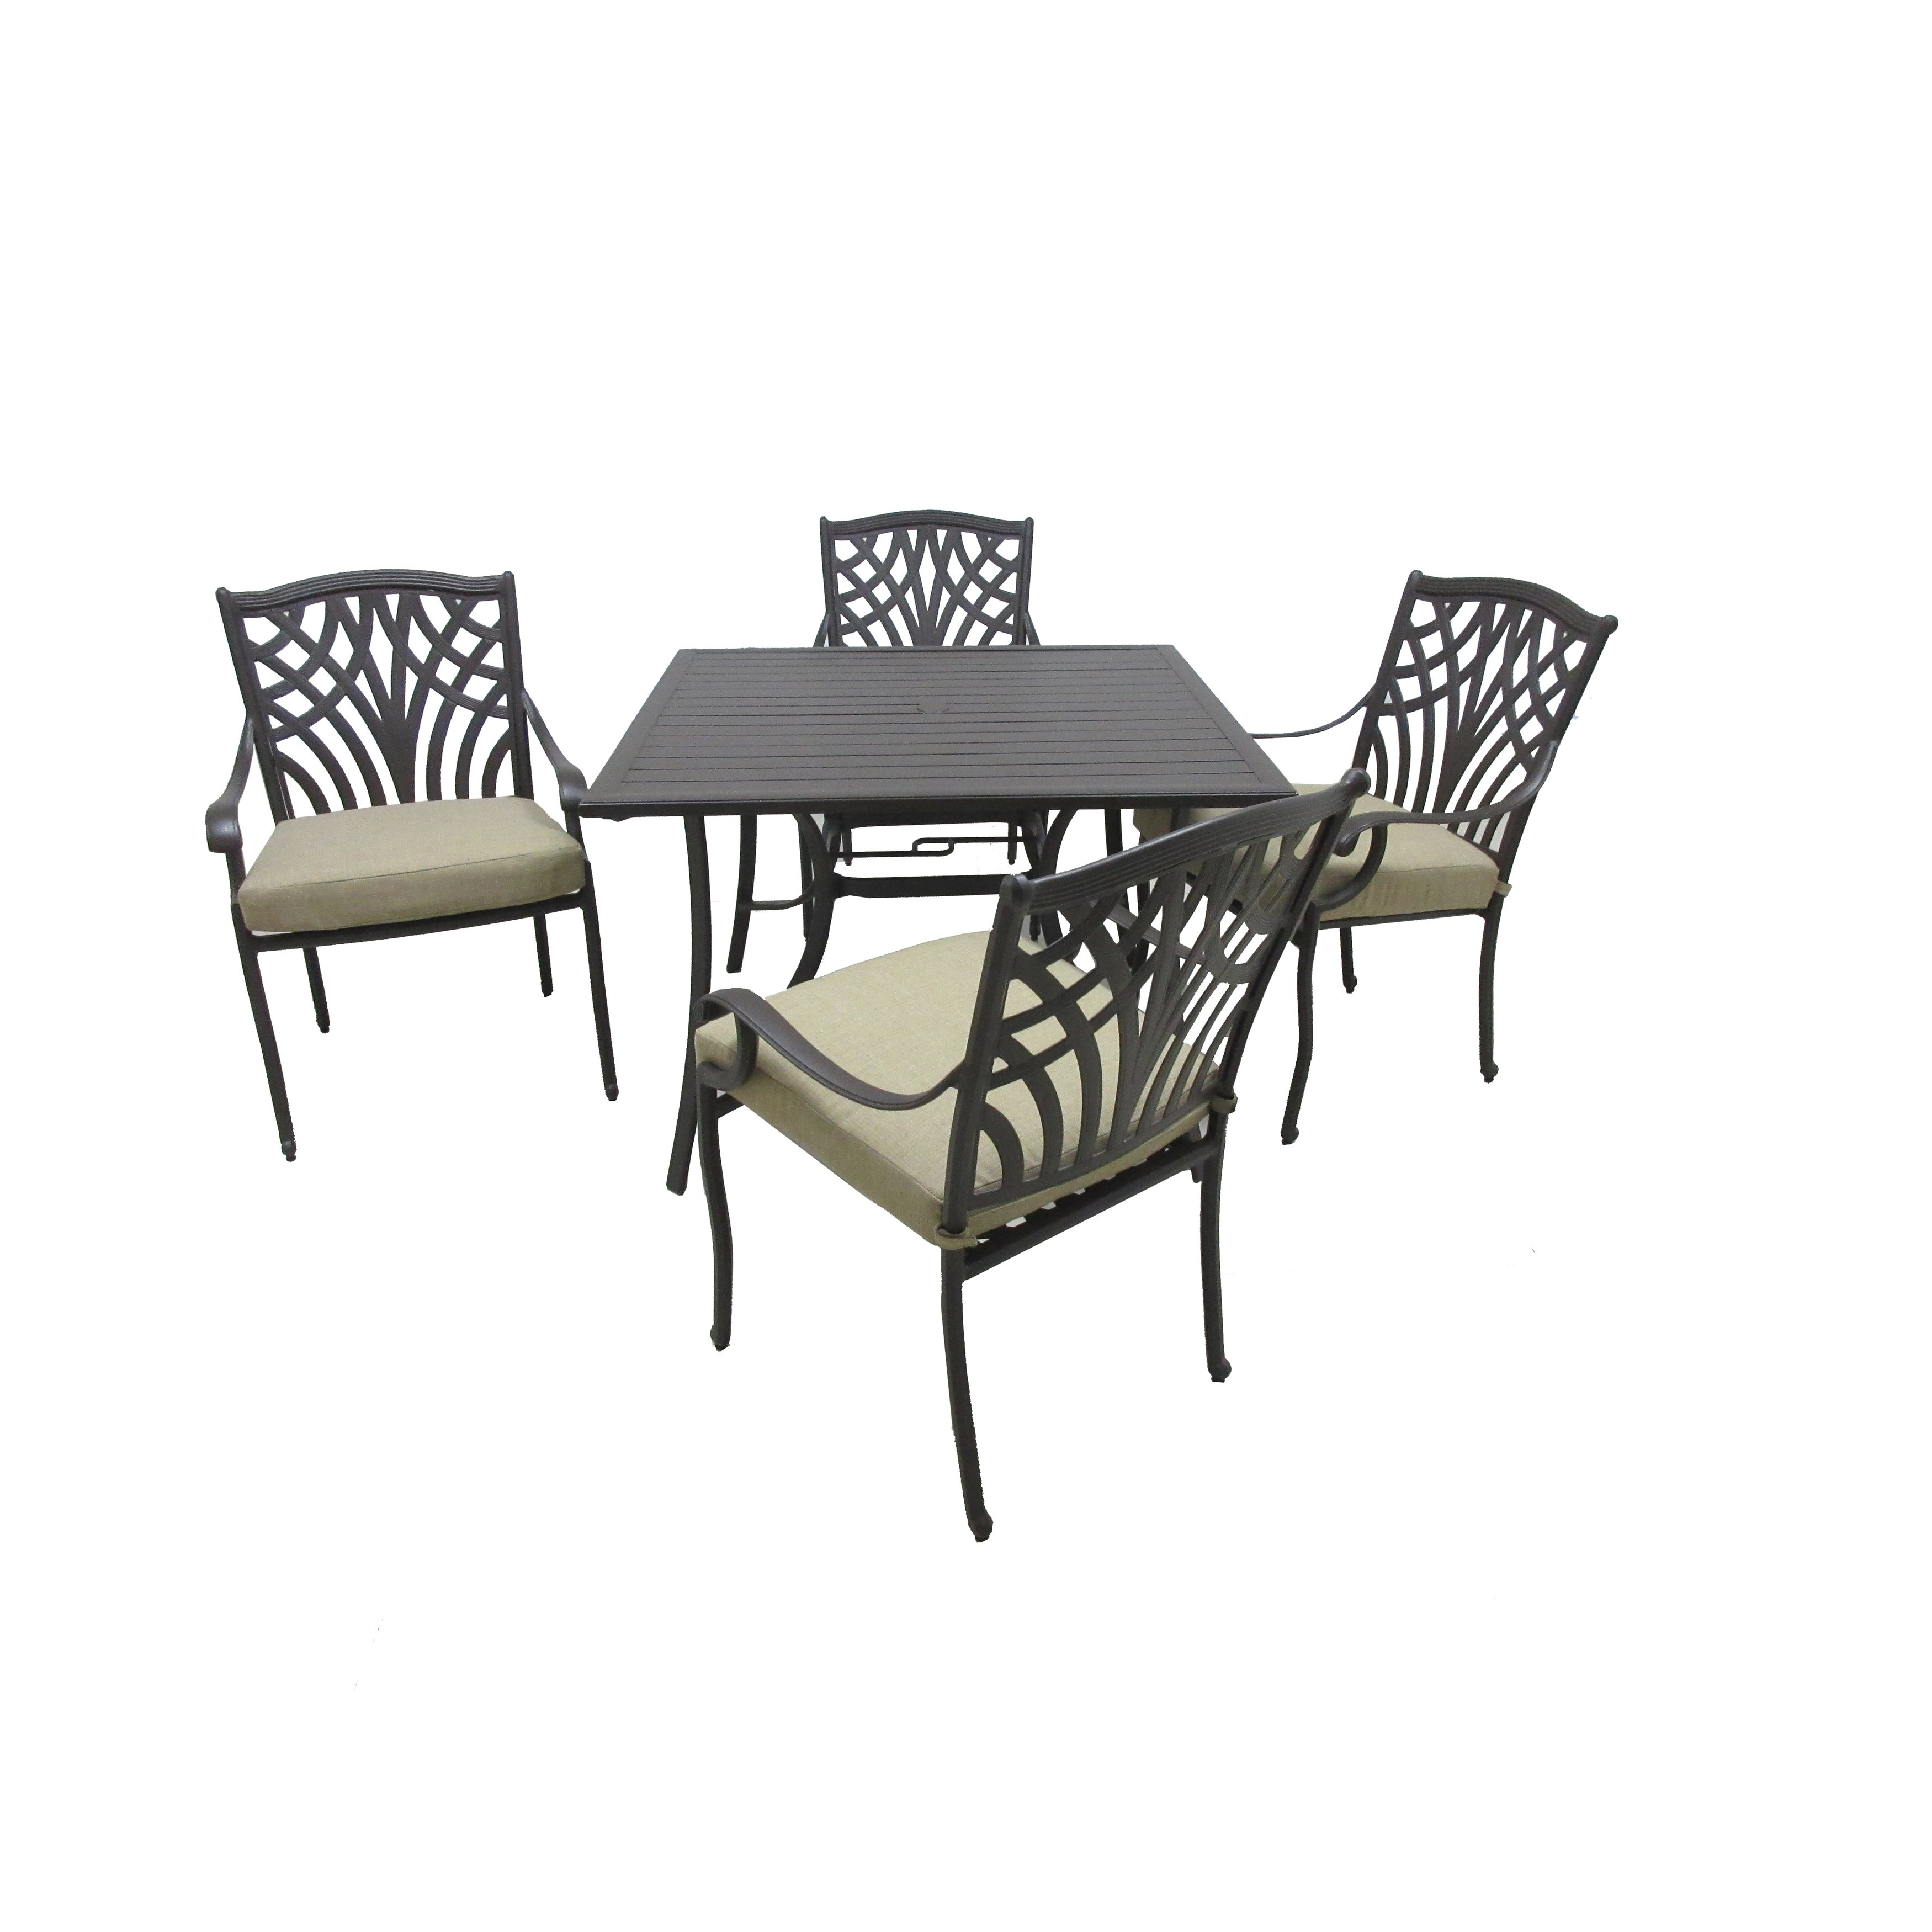 carmen piece outdoor dining collection free shipping today slat din tbl metal accent table pier one seat cushions basket coffee target scalloped mirrored side tables for bedroom